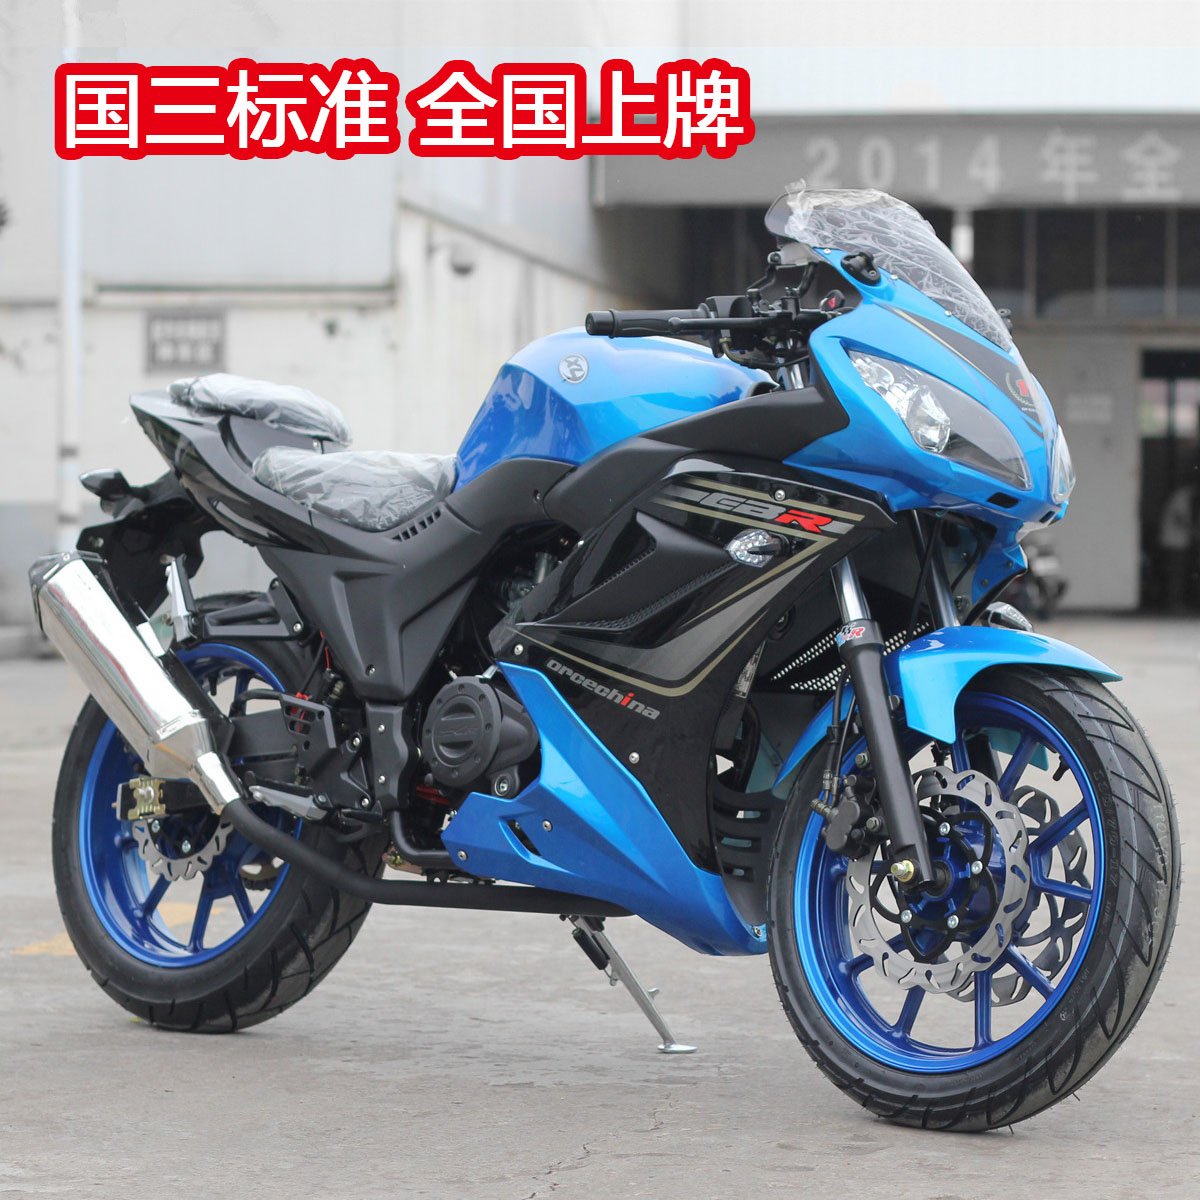 new mausoleum horizon motorcycle zongshen power 150cc 250cc road race sports car with invoice can